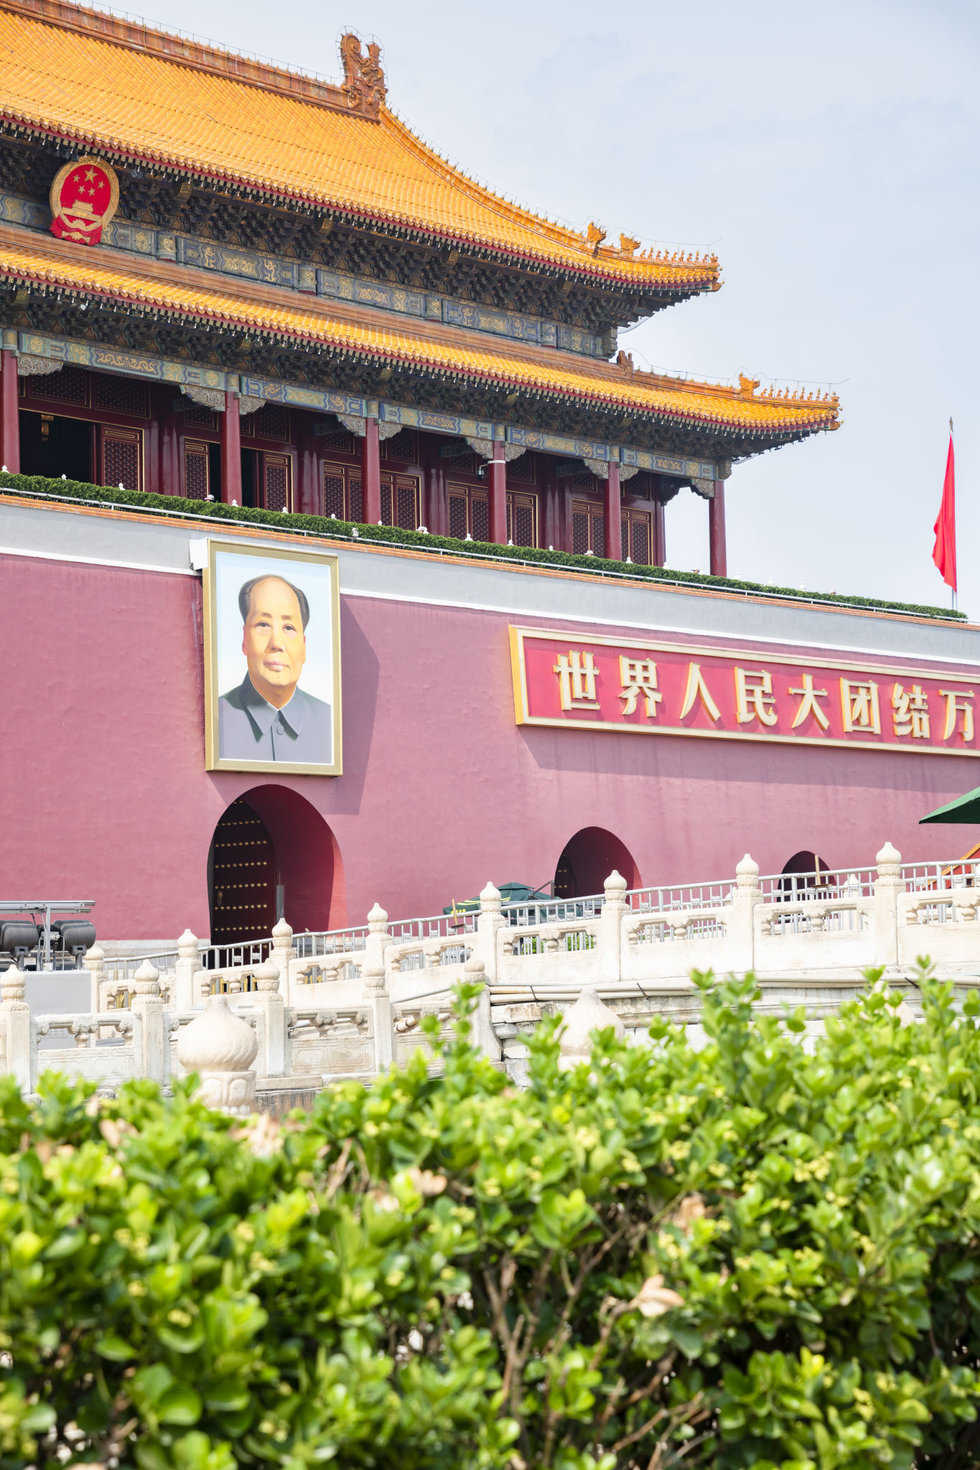 A portrait of Mao Zedong at the Forbidden City